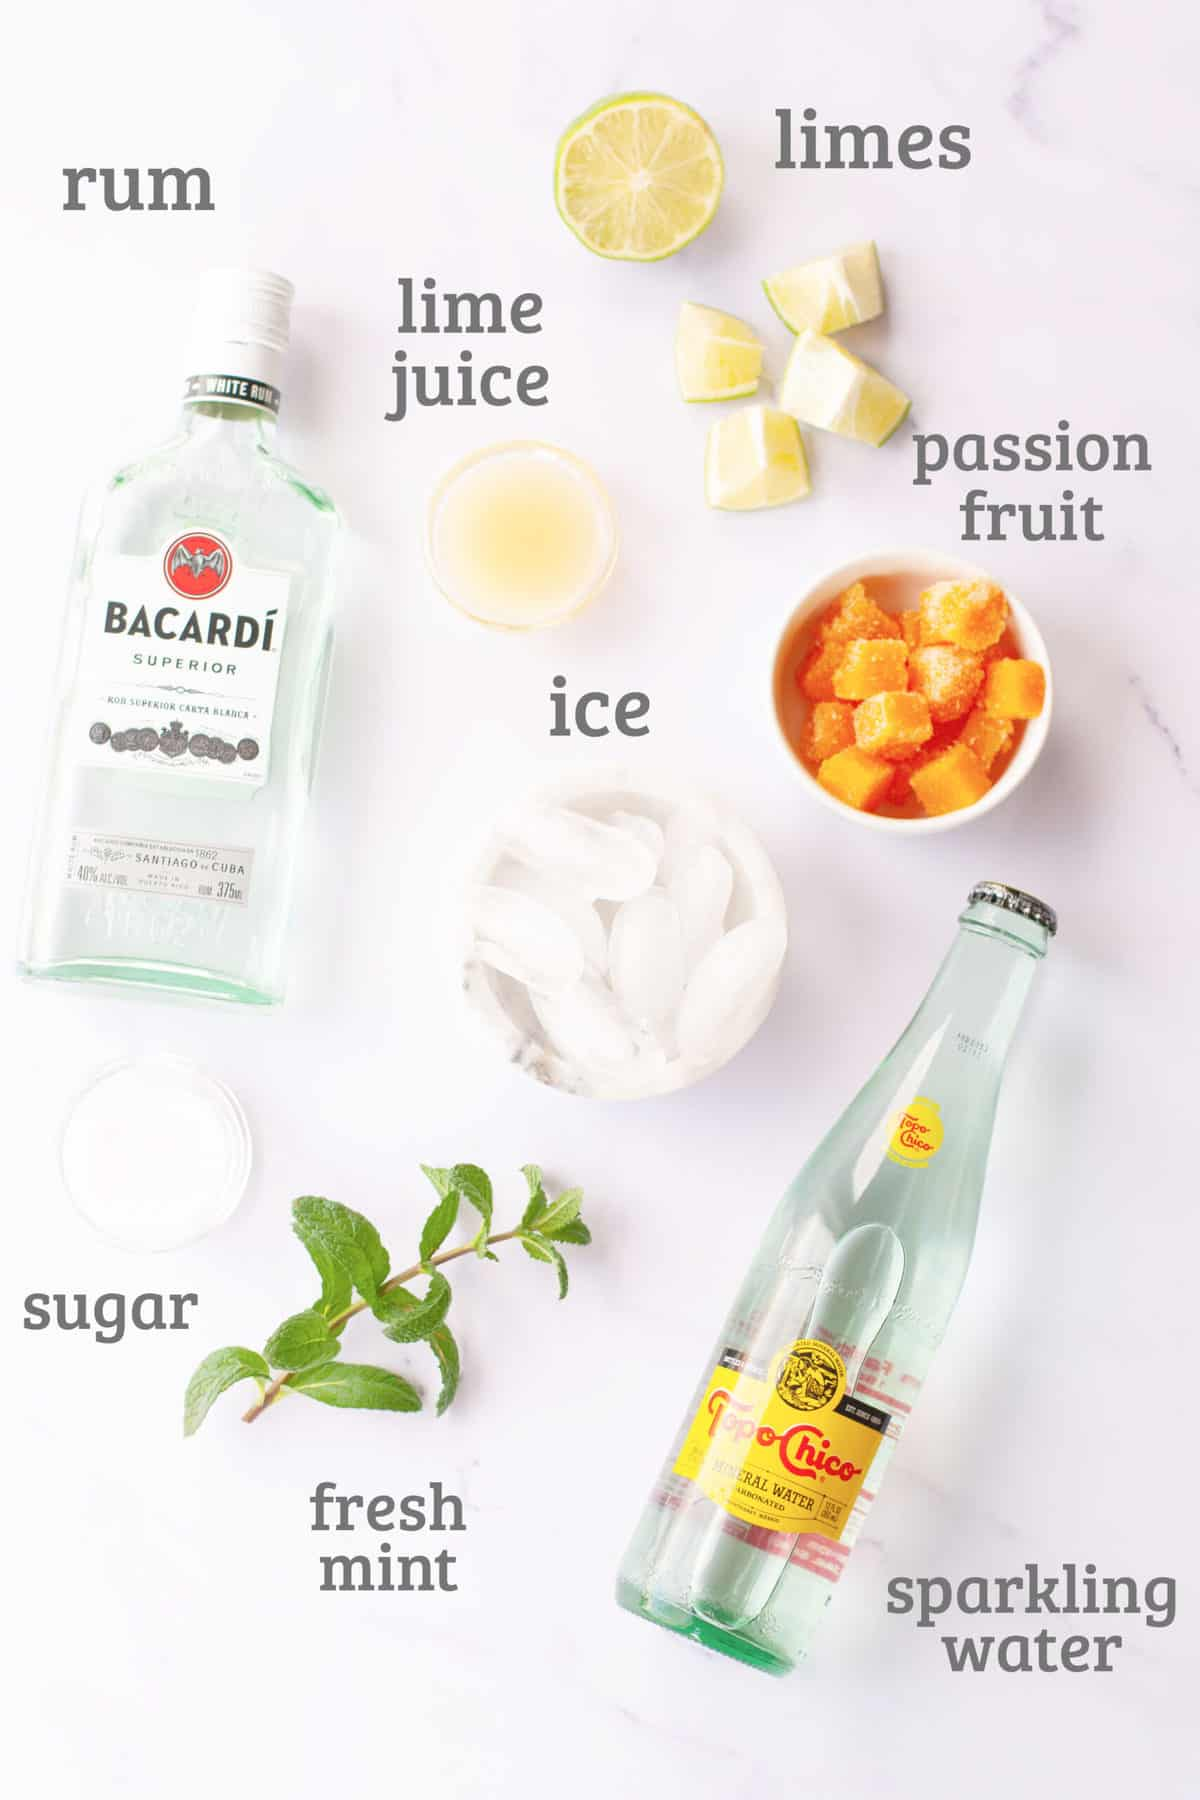 Ingredients for passion fruit mojitos - limes, rum, mint, sugar, passion fruit